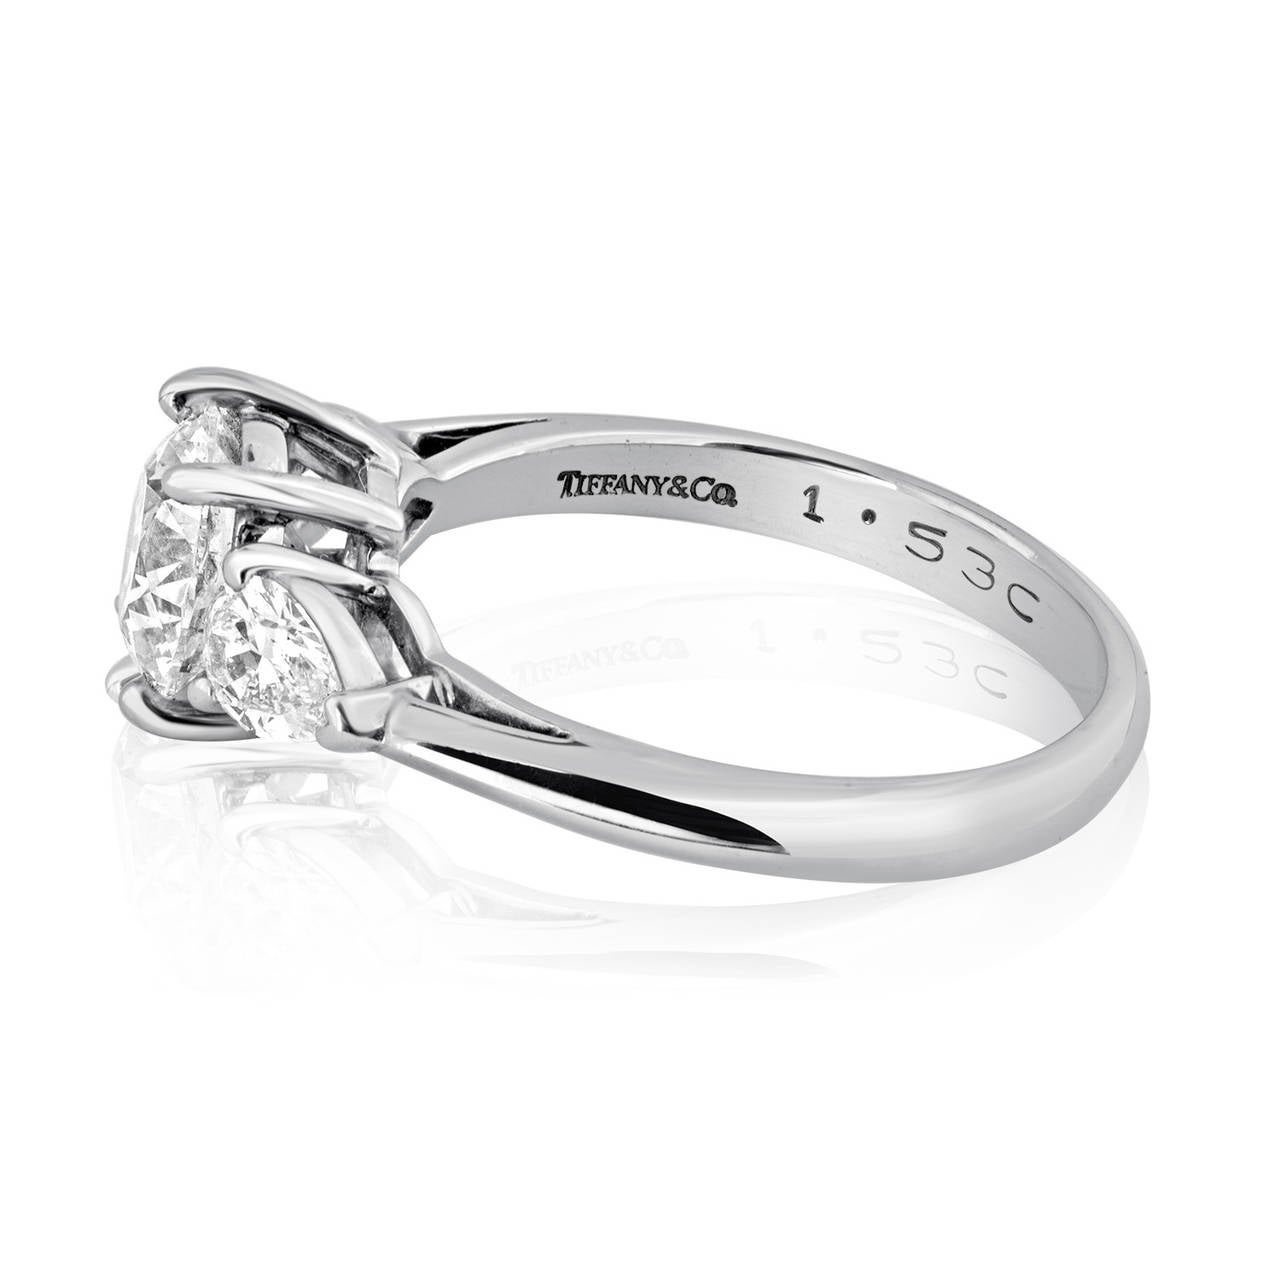 Tiffany & Co. 1.53 Carat G VS1 Diamond Platinum Engagement Ring 4